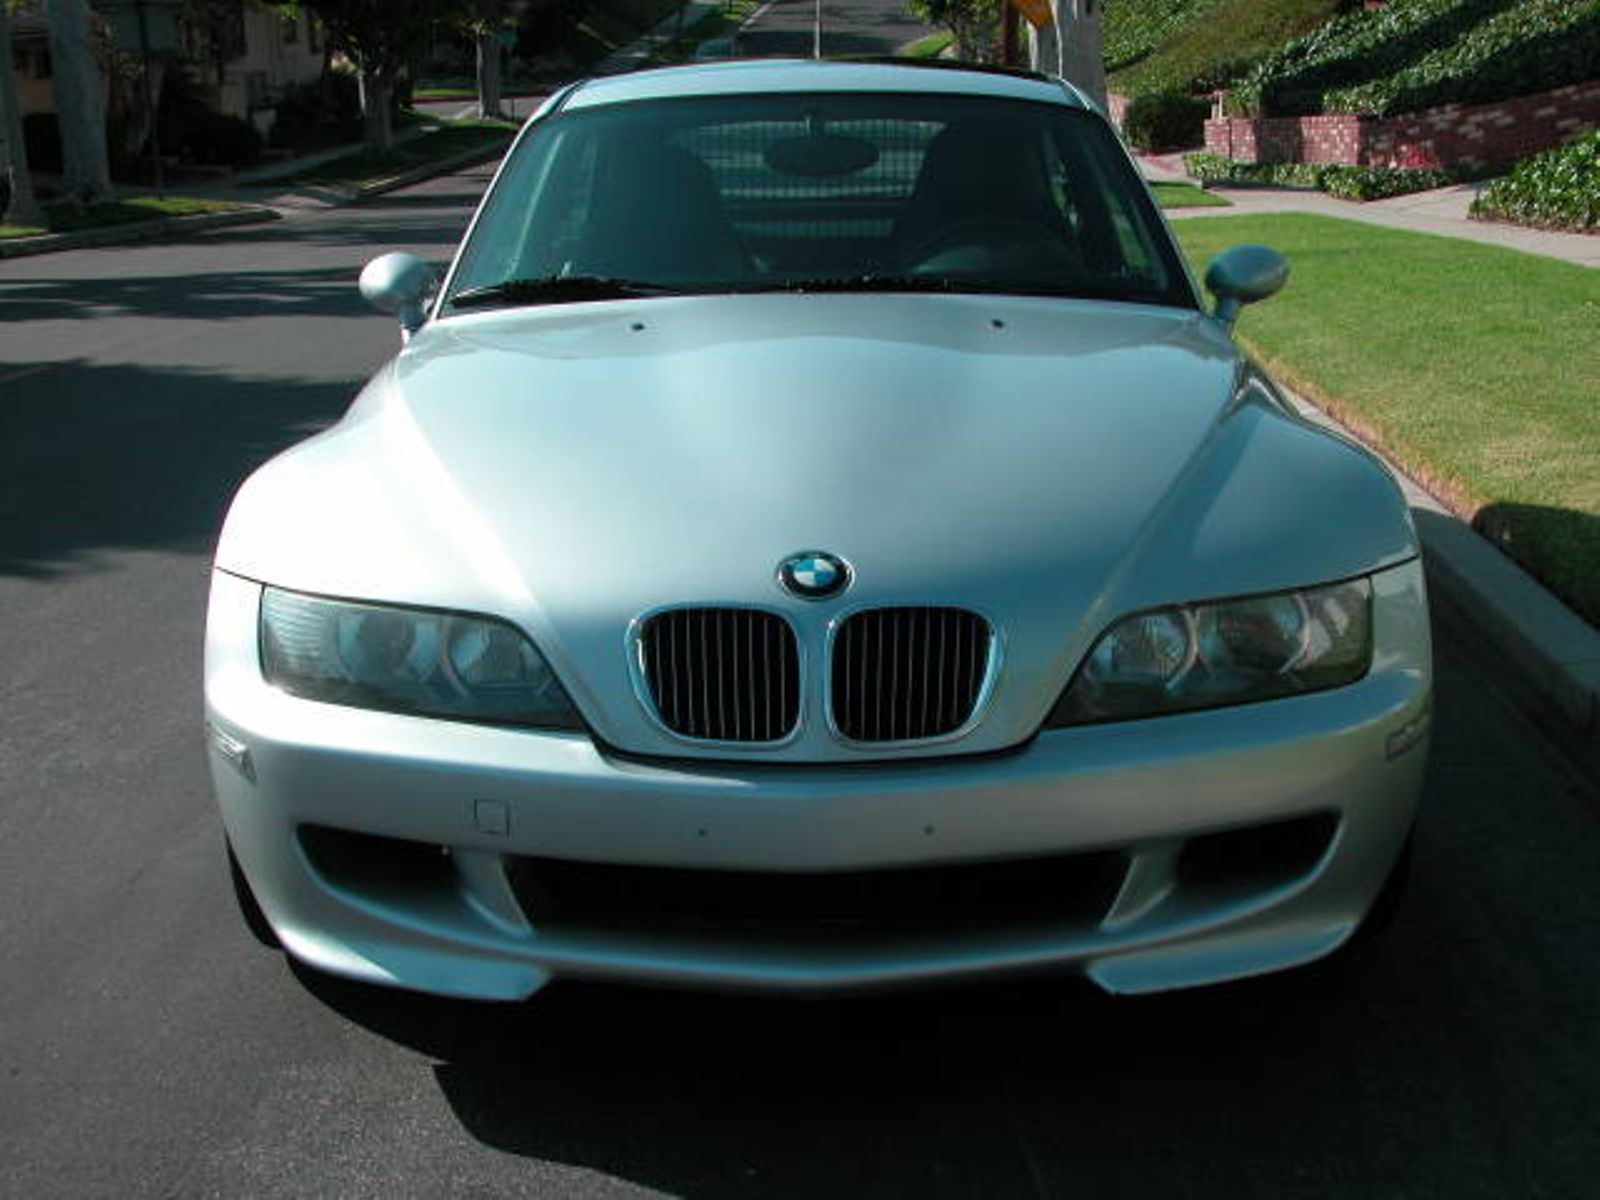 2001 Bmw Z3 M Coupe S54 315hp M 32l Original Owner